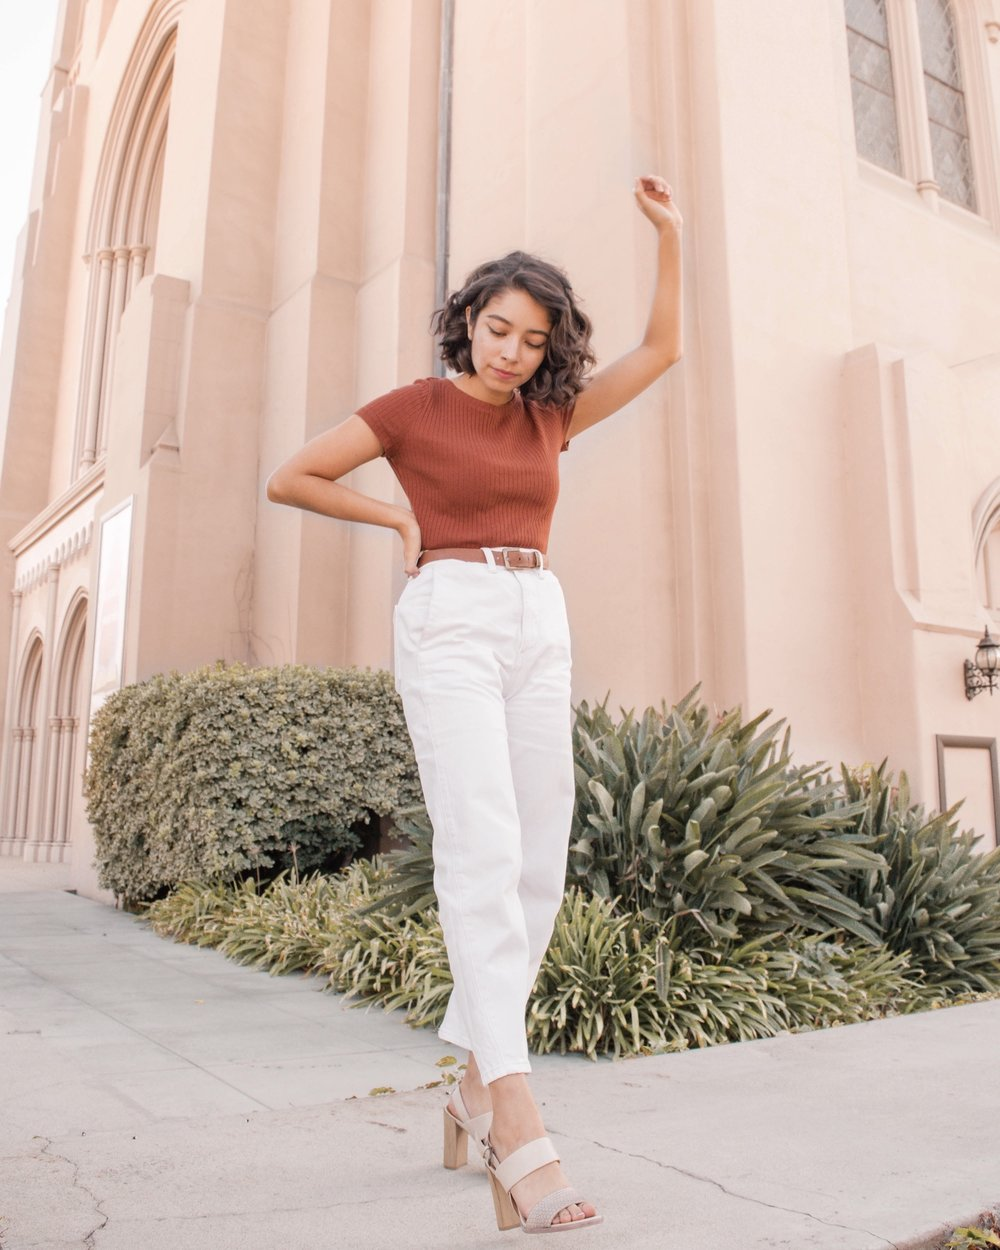 Rust and white outfit // A Week Of Self-Expressive Outfits With Aja Duran From Aja With Love on The Good Trade